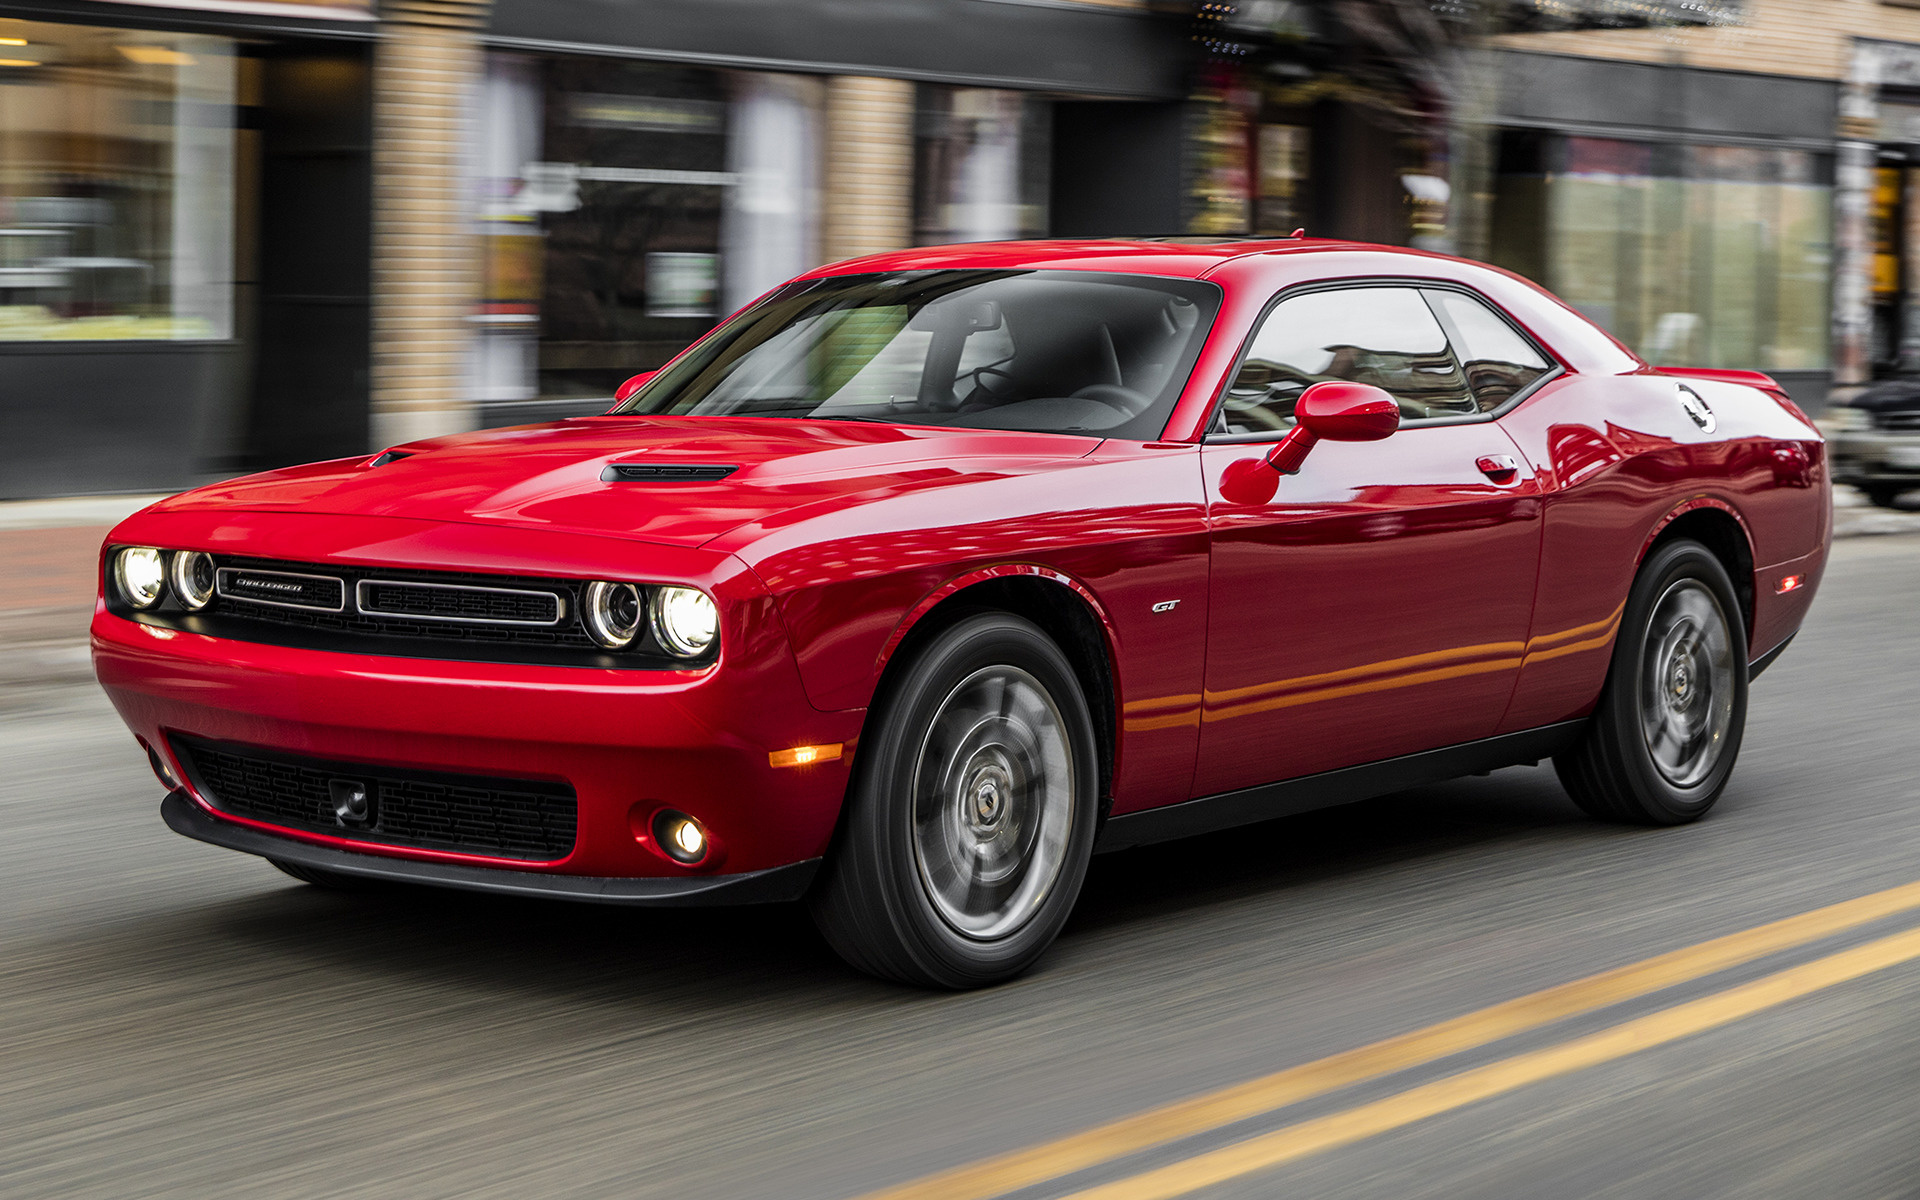 2016 Dodge Challenger Hellcat >> 2017 Dodge Challenger GT - Wallpapers and HD Images | Car ...